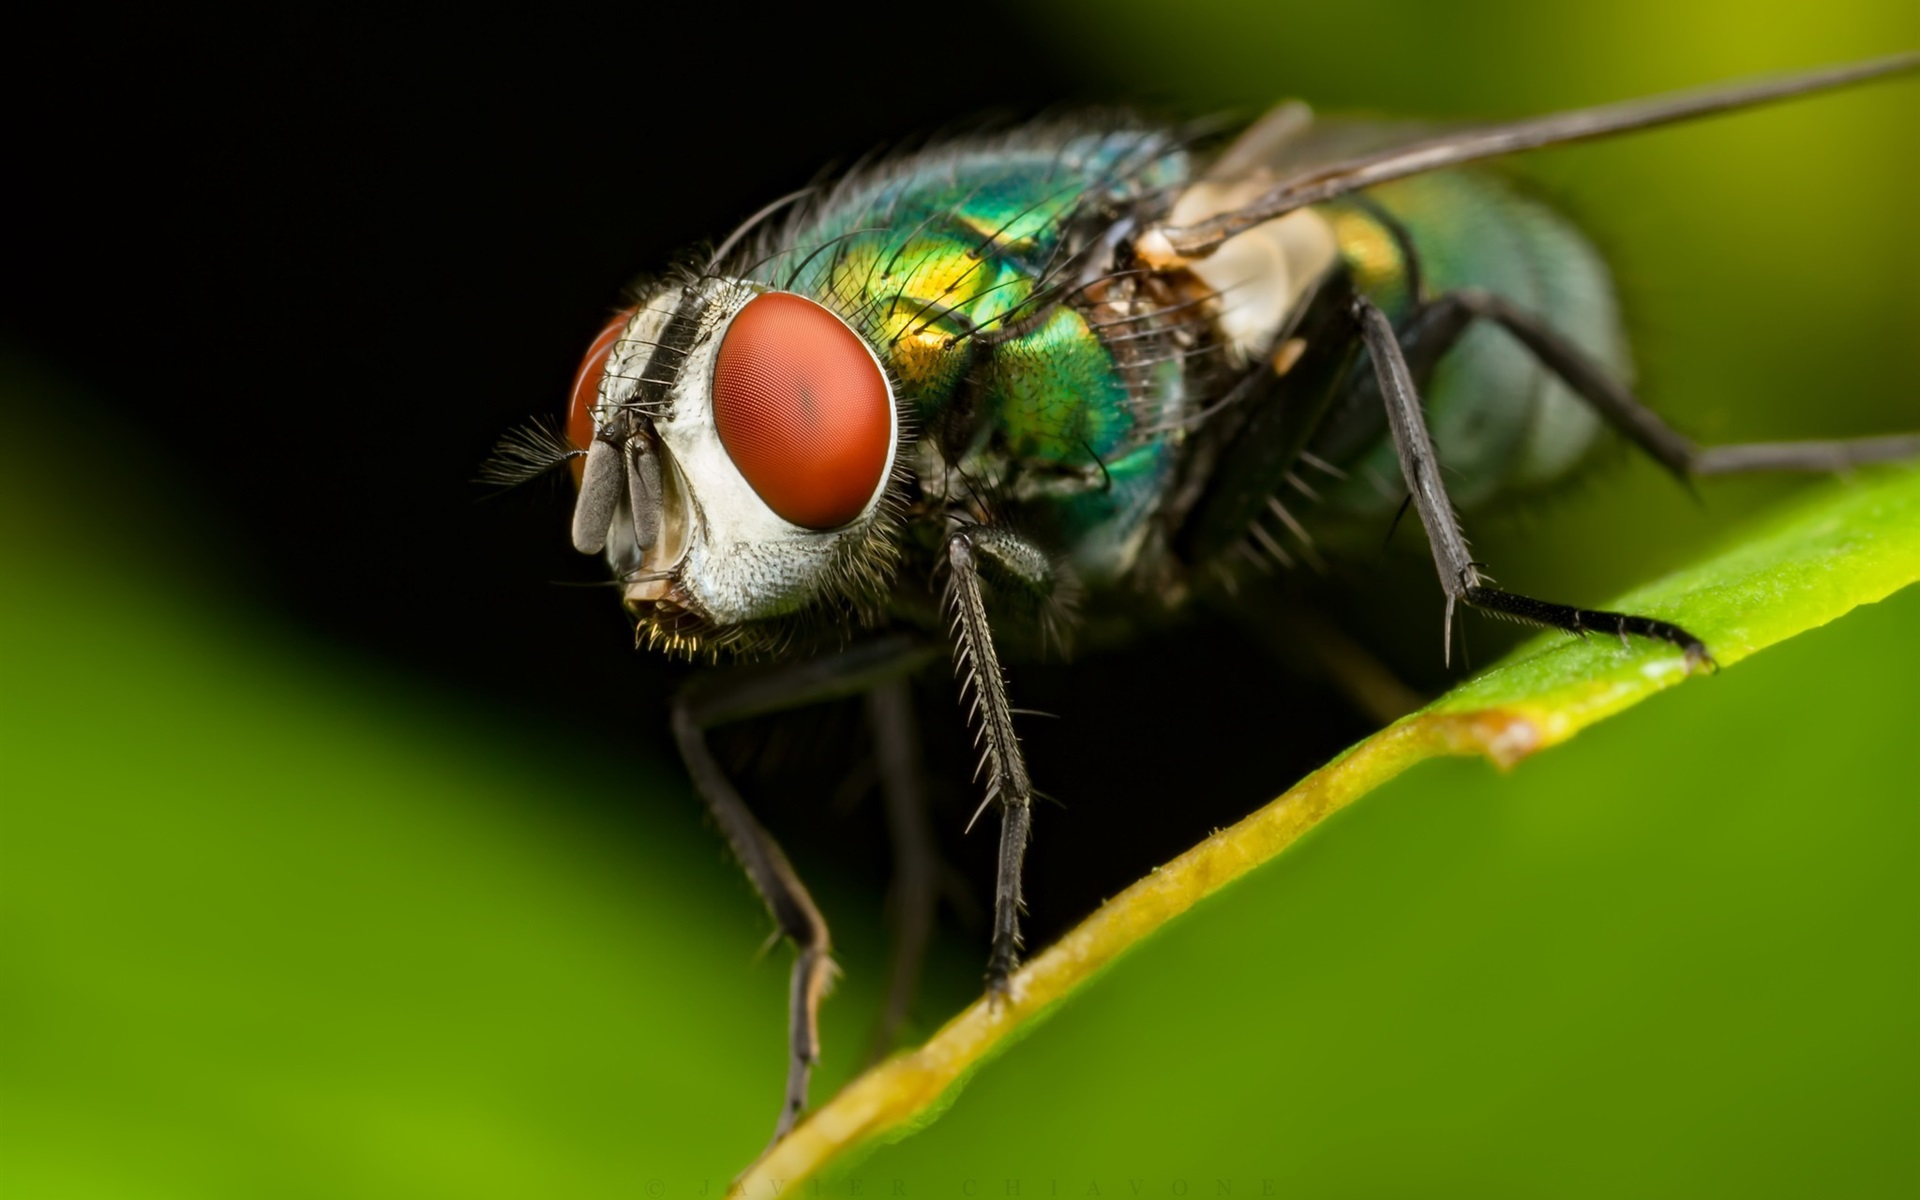 Wallpapers Insect housefly macro photography, green leaf